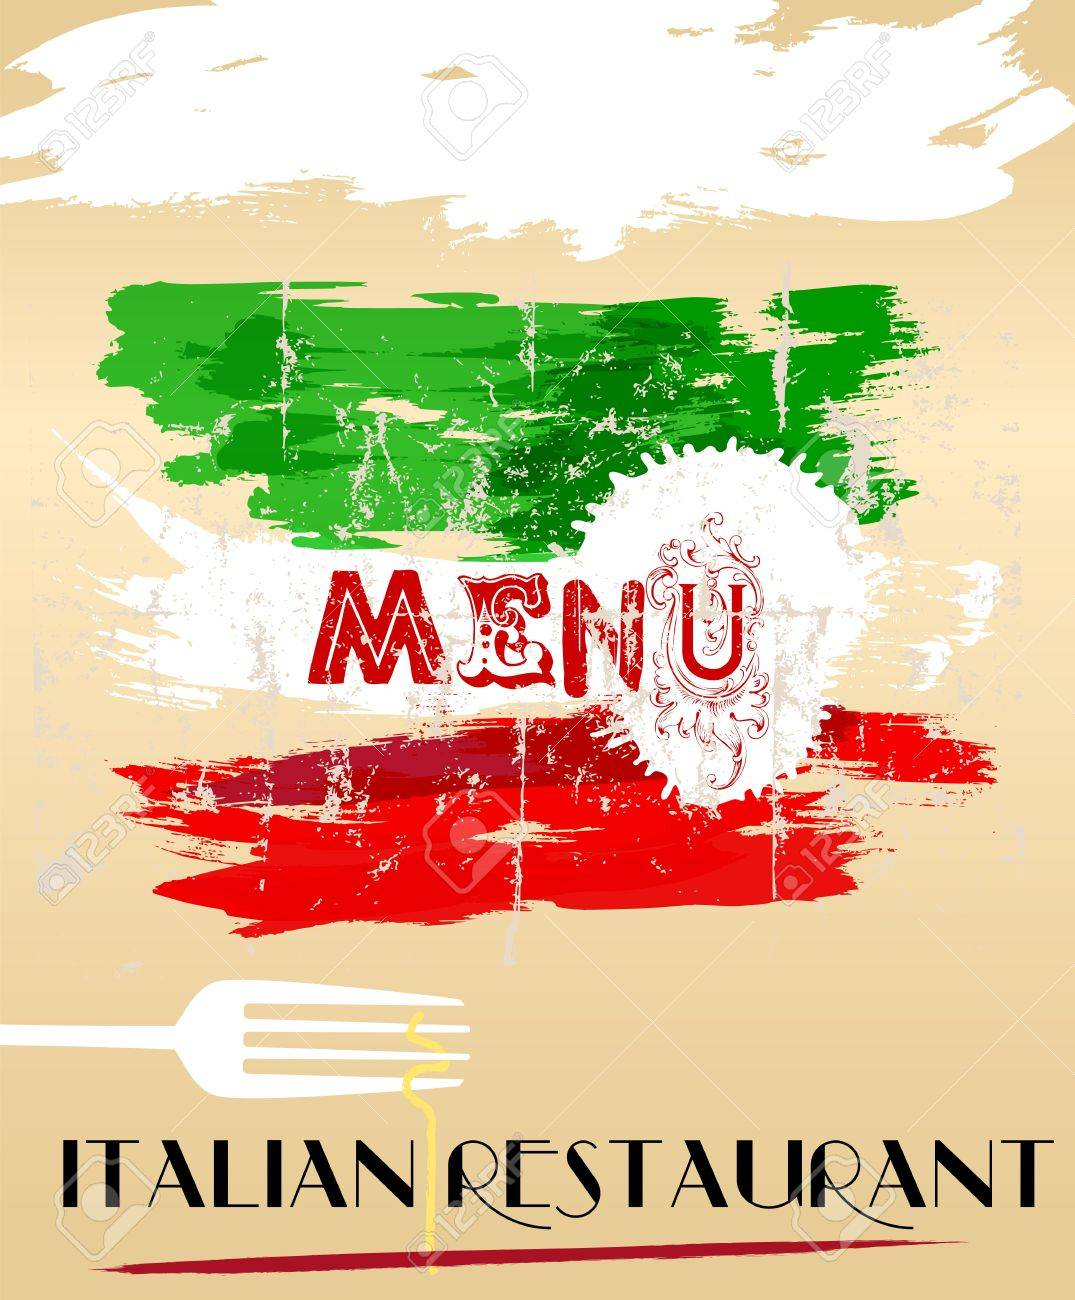 menu design for italian restaurant, free space for restaurant